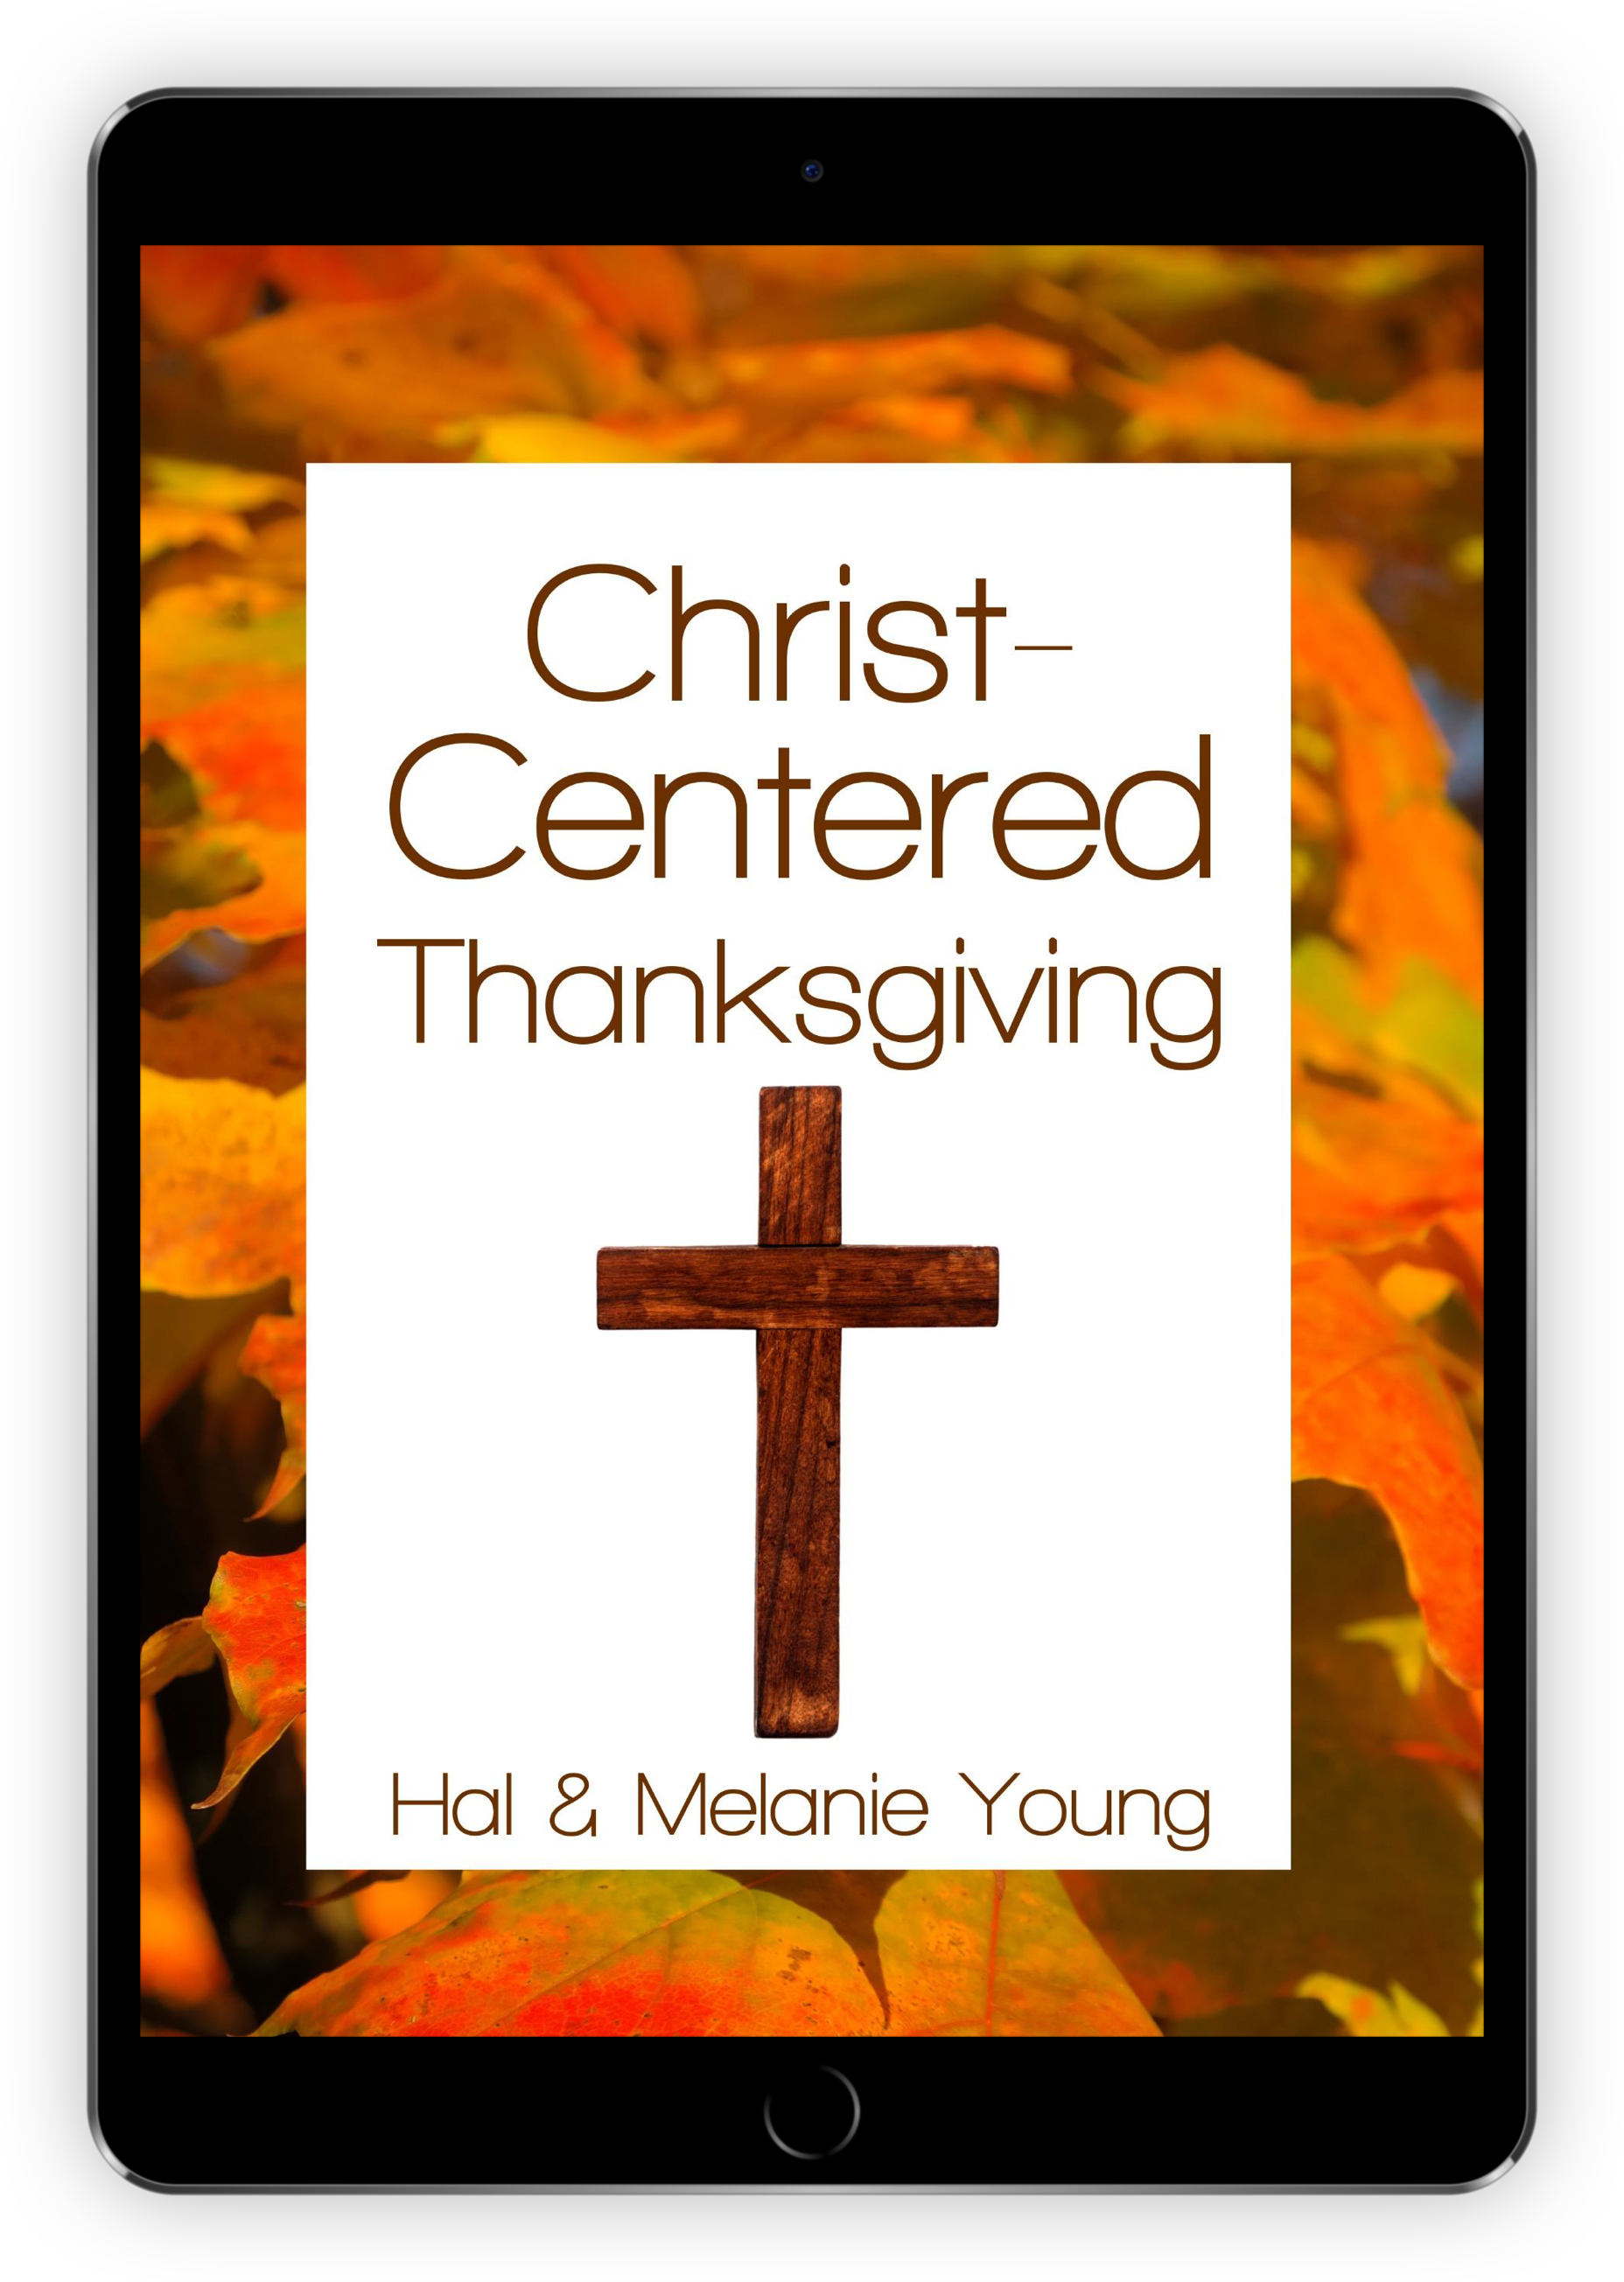 ChristCenteredThanksgiving Mockup - Copy.png